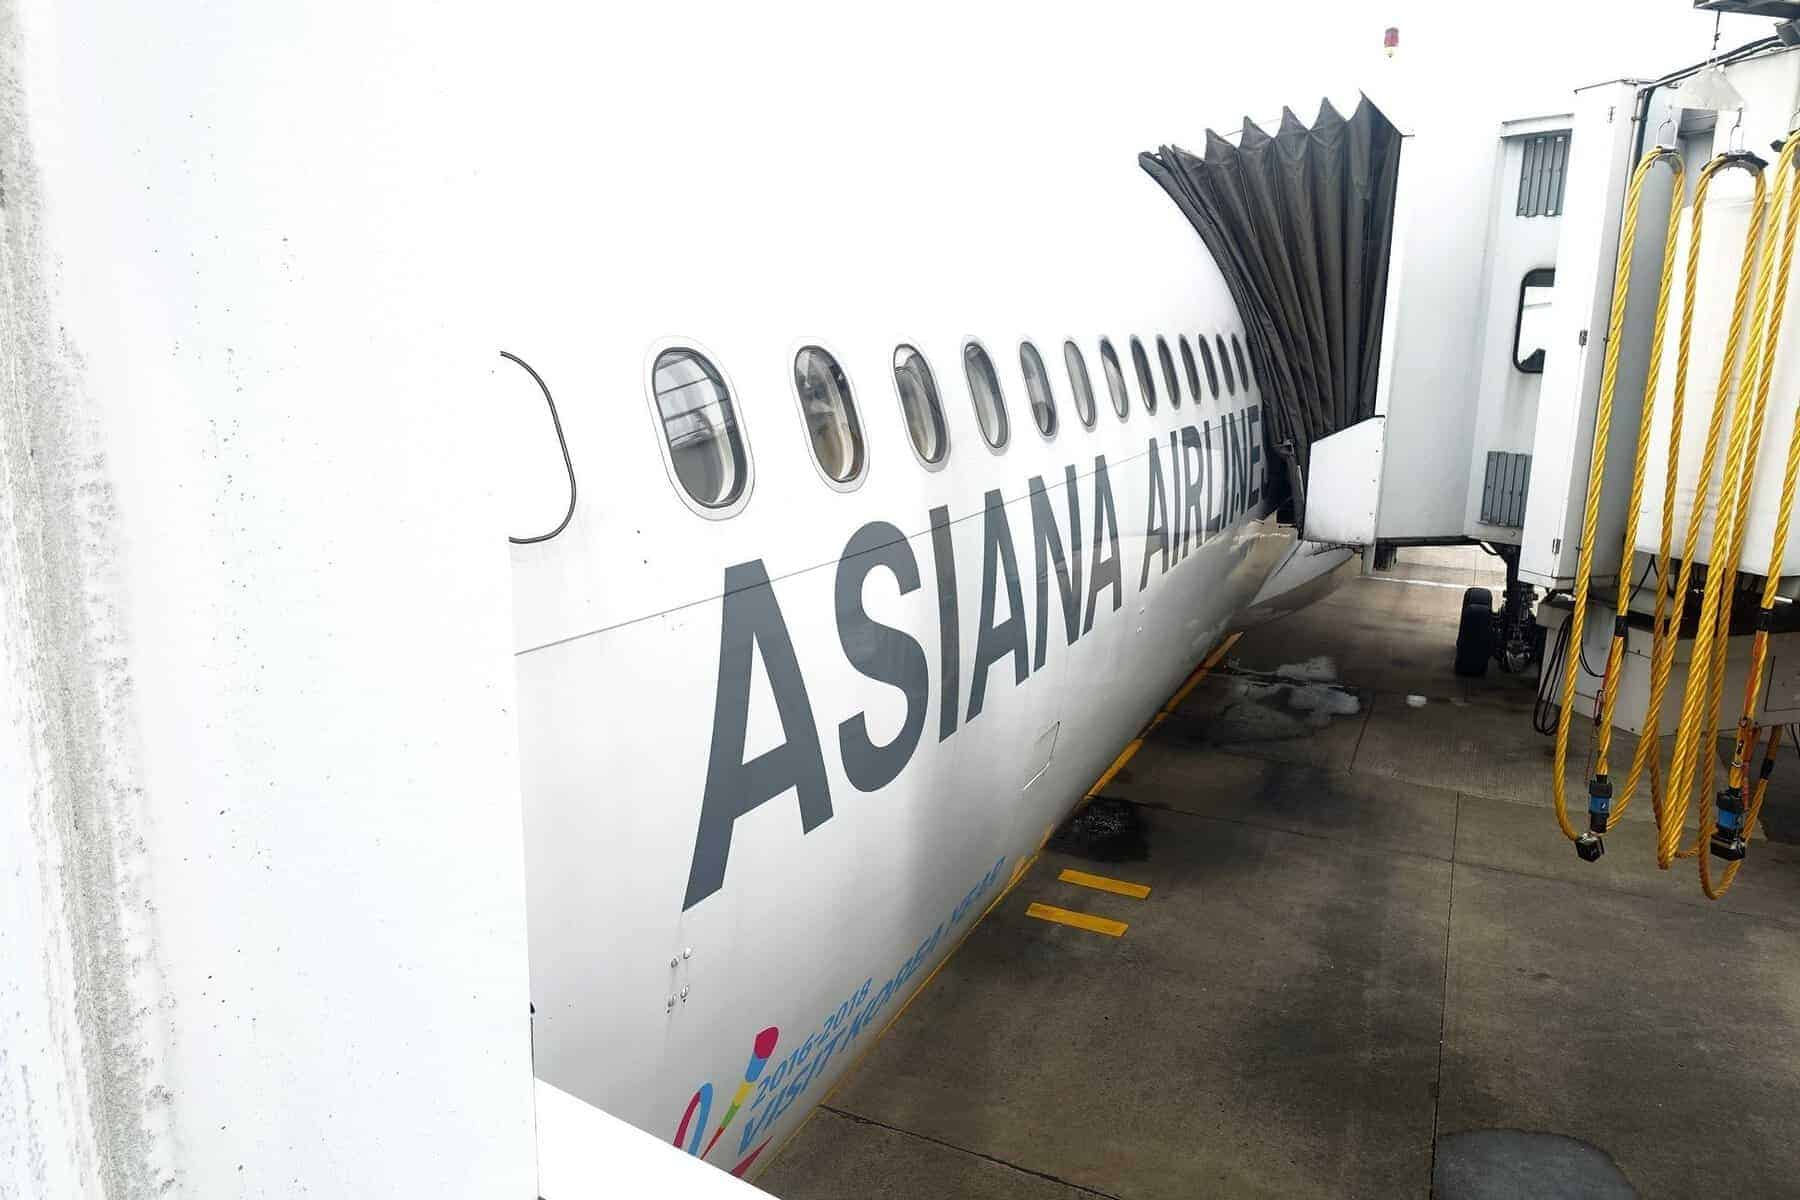 asiana airlines a330 business class sgn icn 09